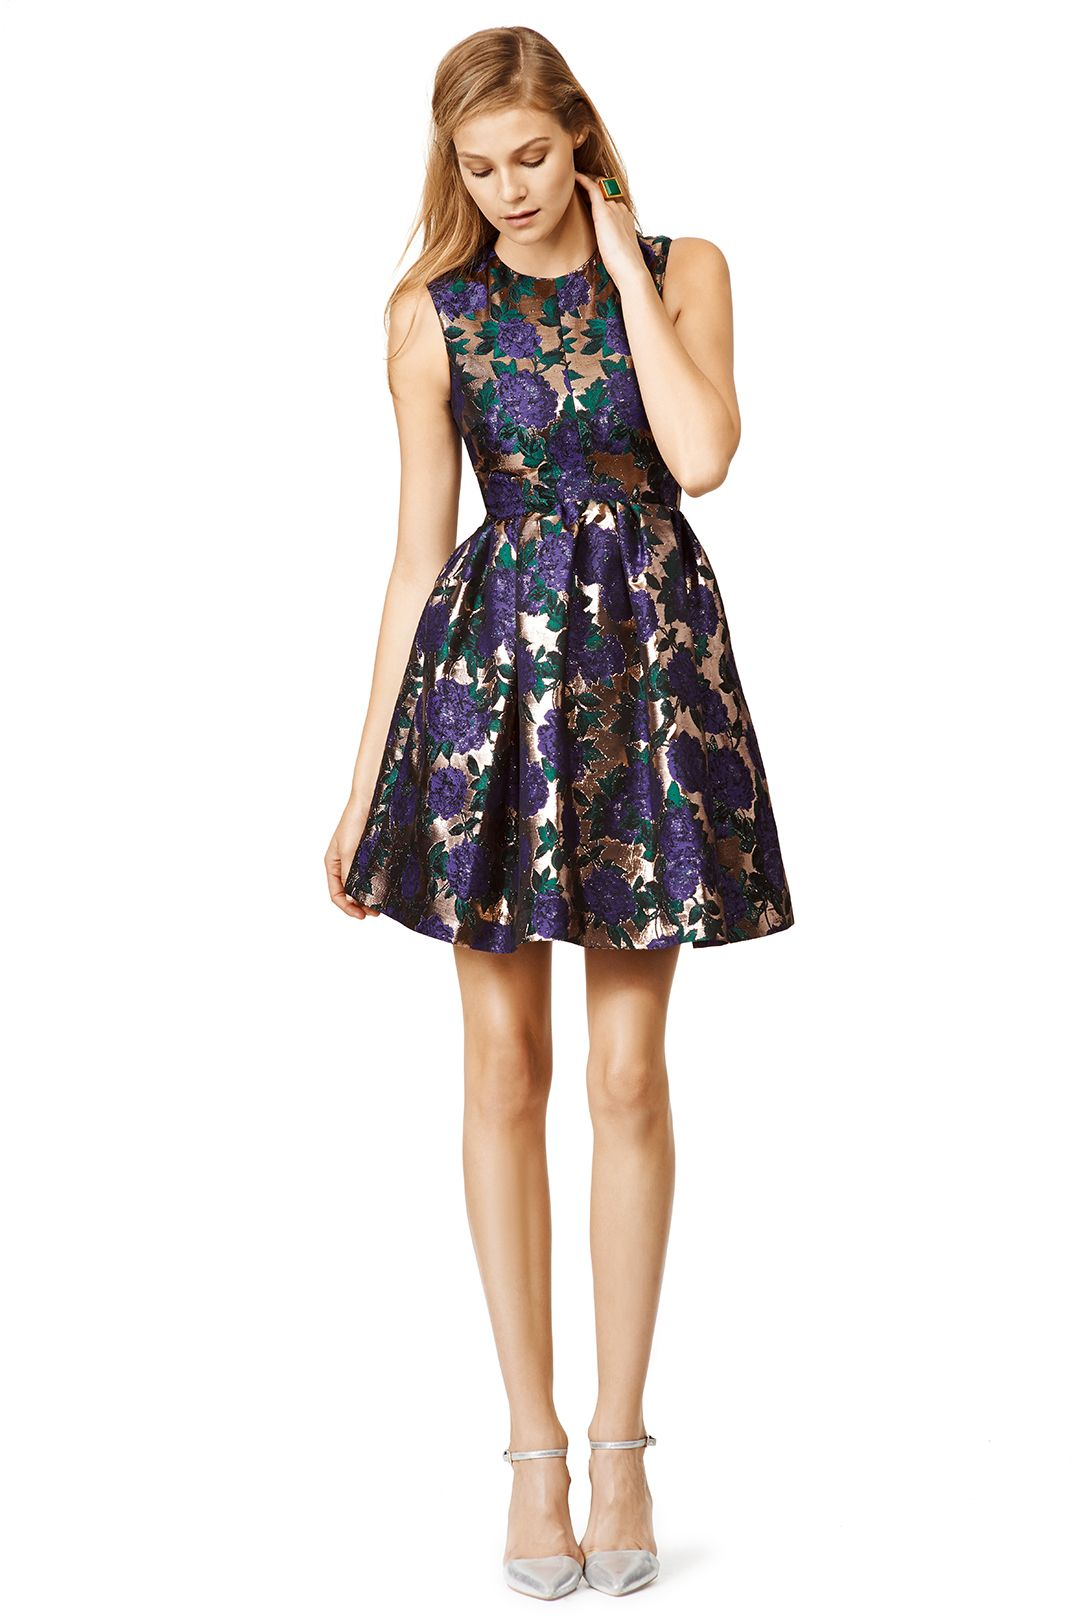 Cocktail dresses for summer wedding  Dresses Under   Msgm Prom and Clothes